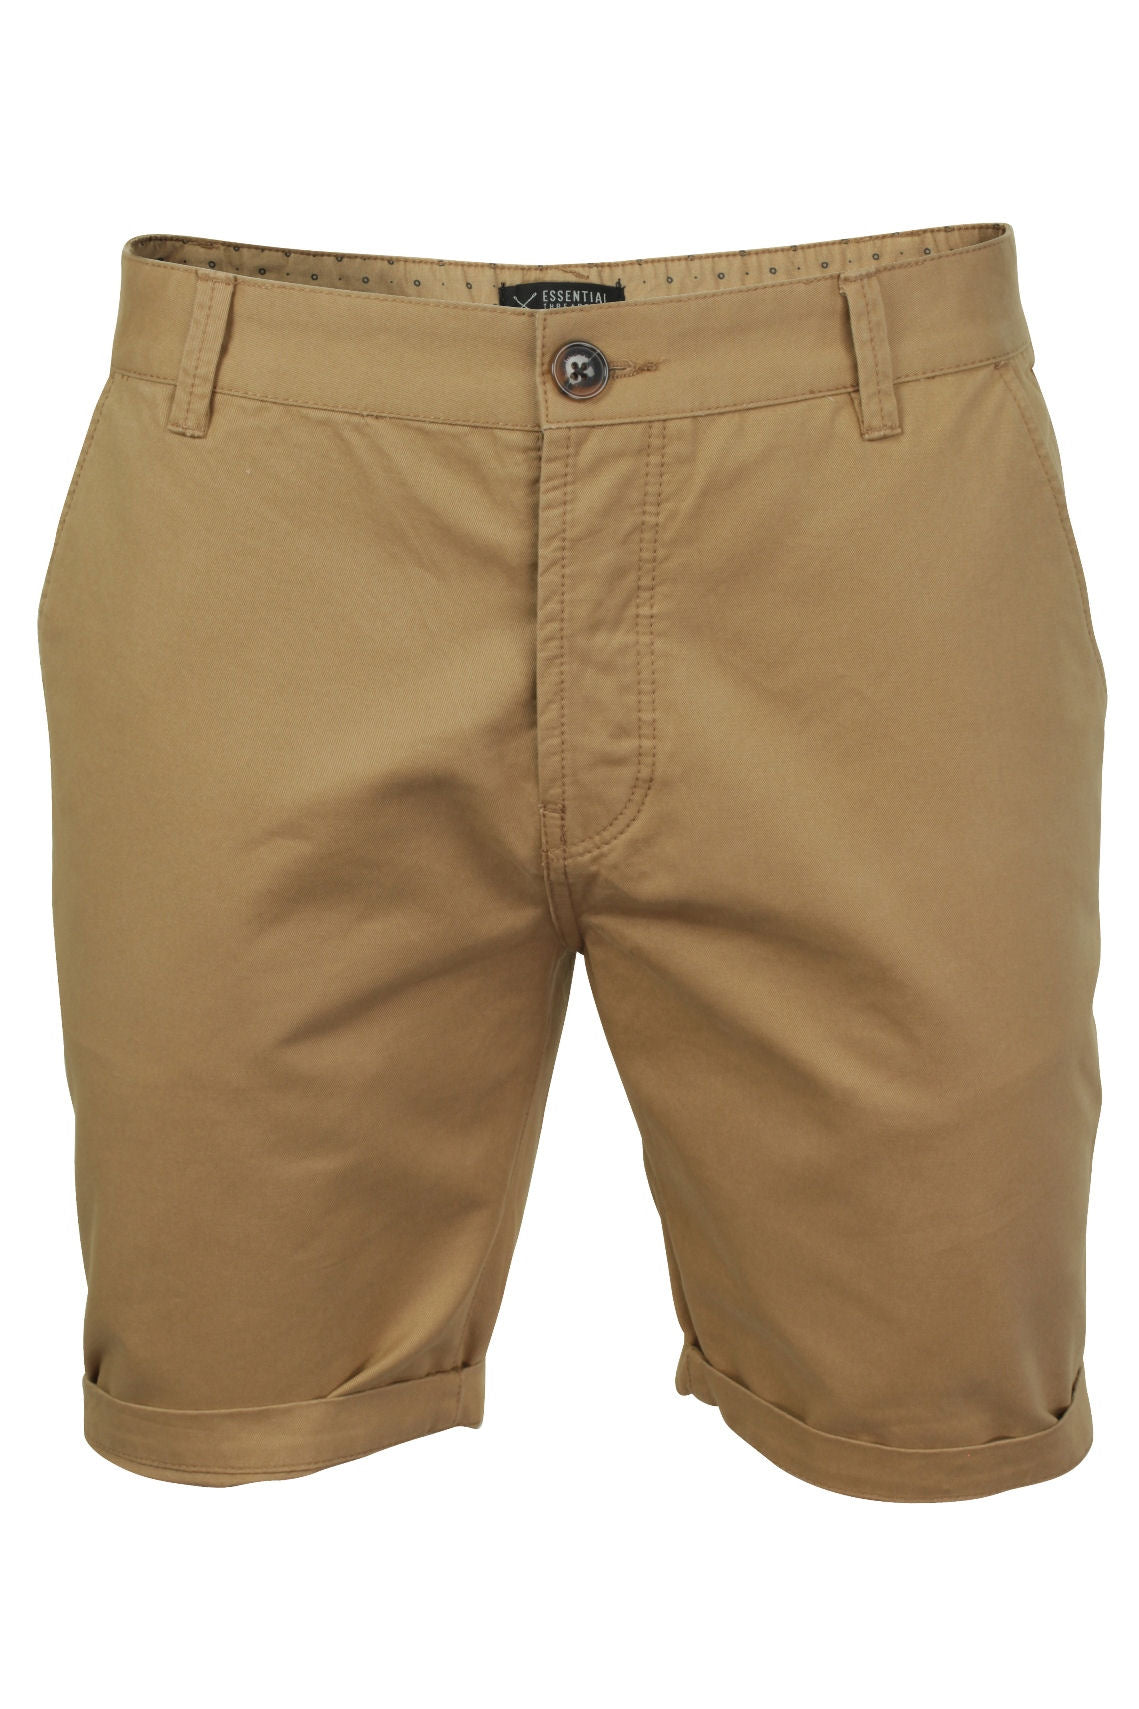 Mens Classic Chino Shorts by Threadbare-Main Image